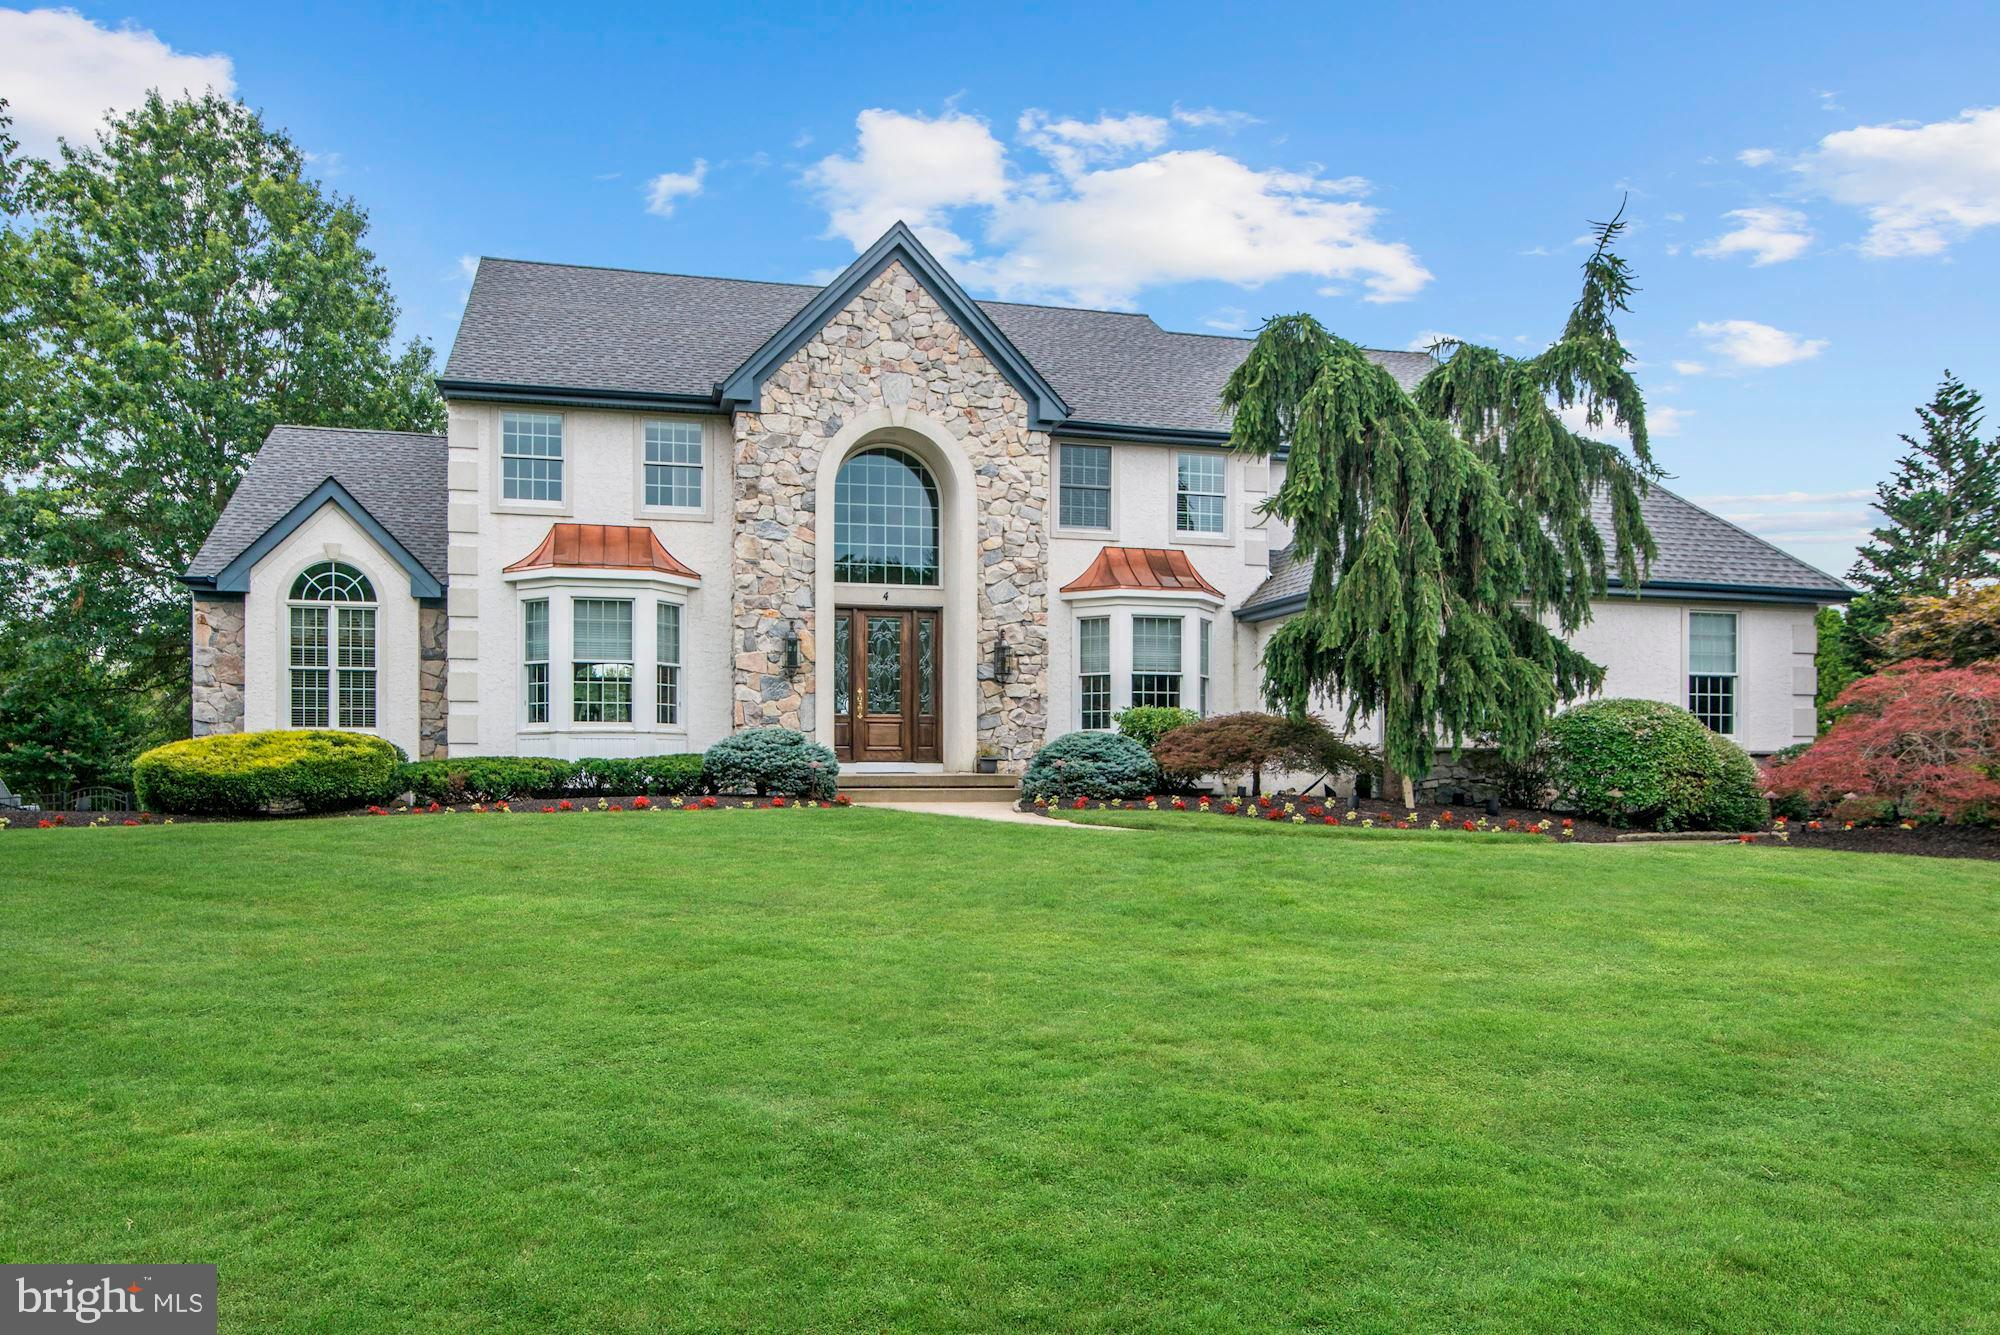 4 TRILLIUM LANE, MOUNT LAUREL, NJ 08054